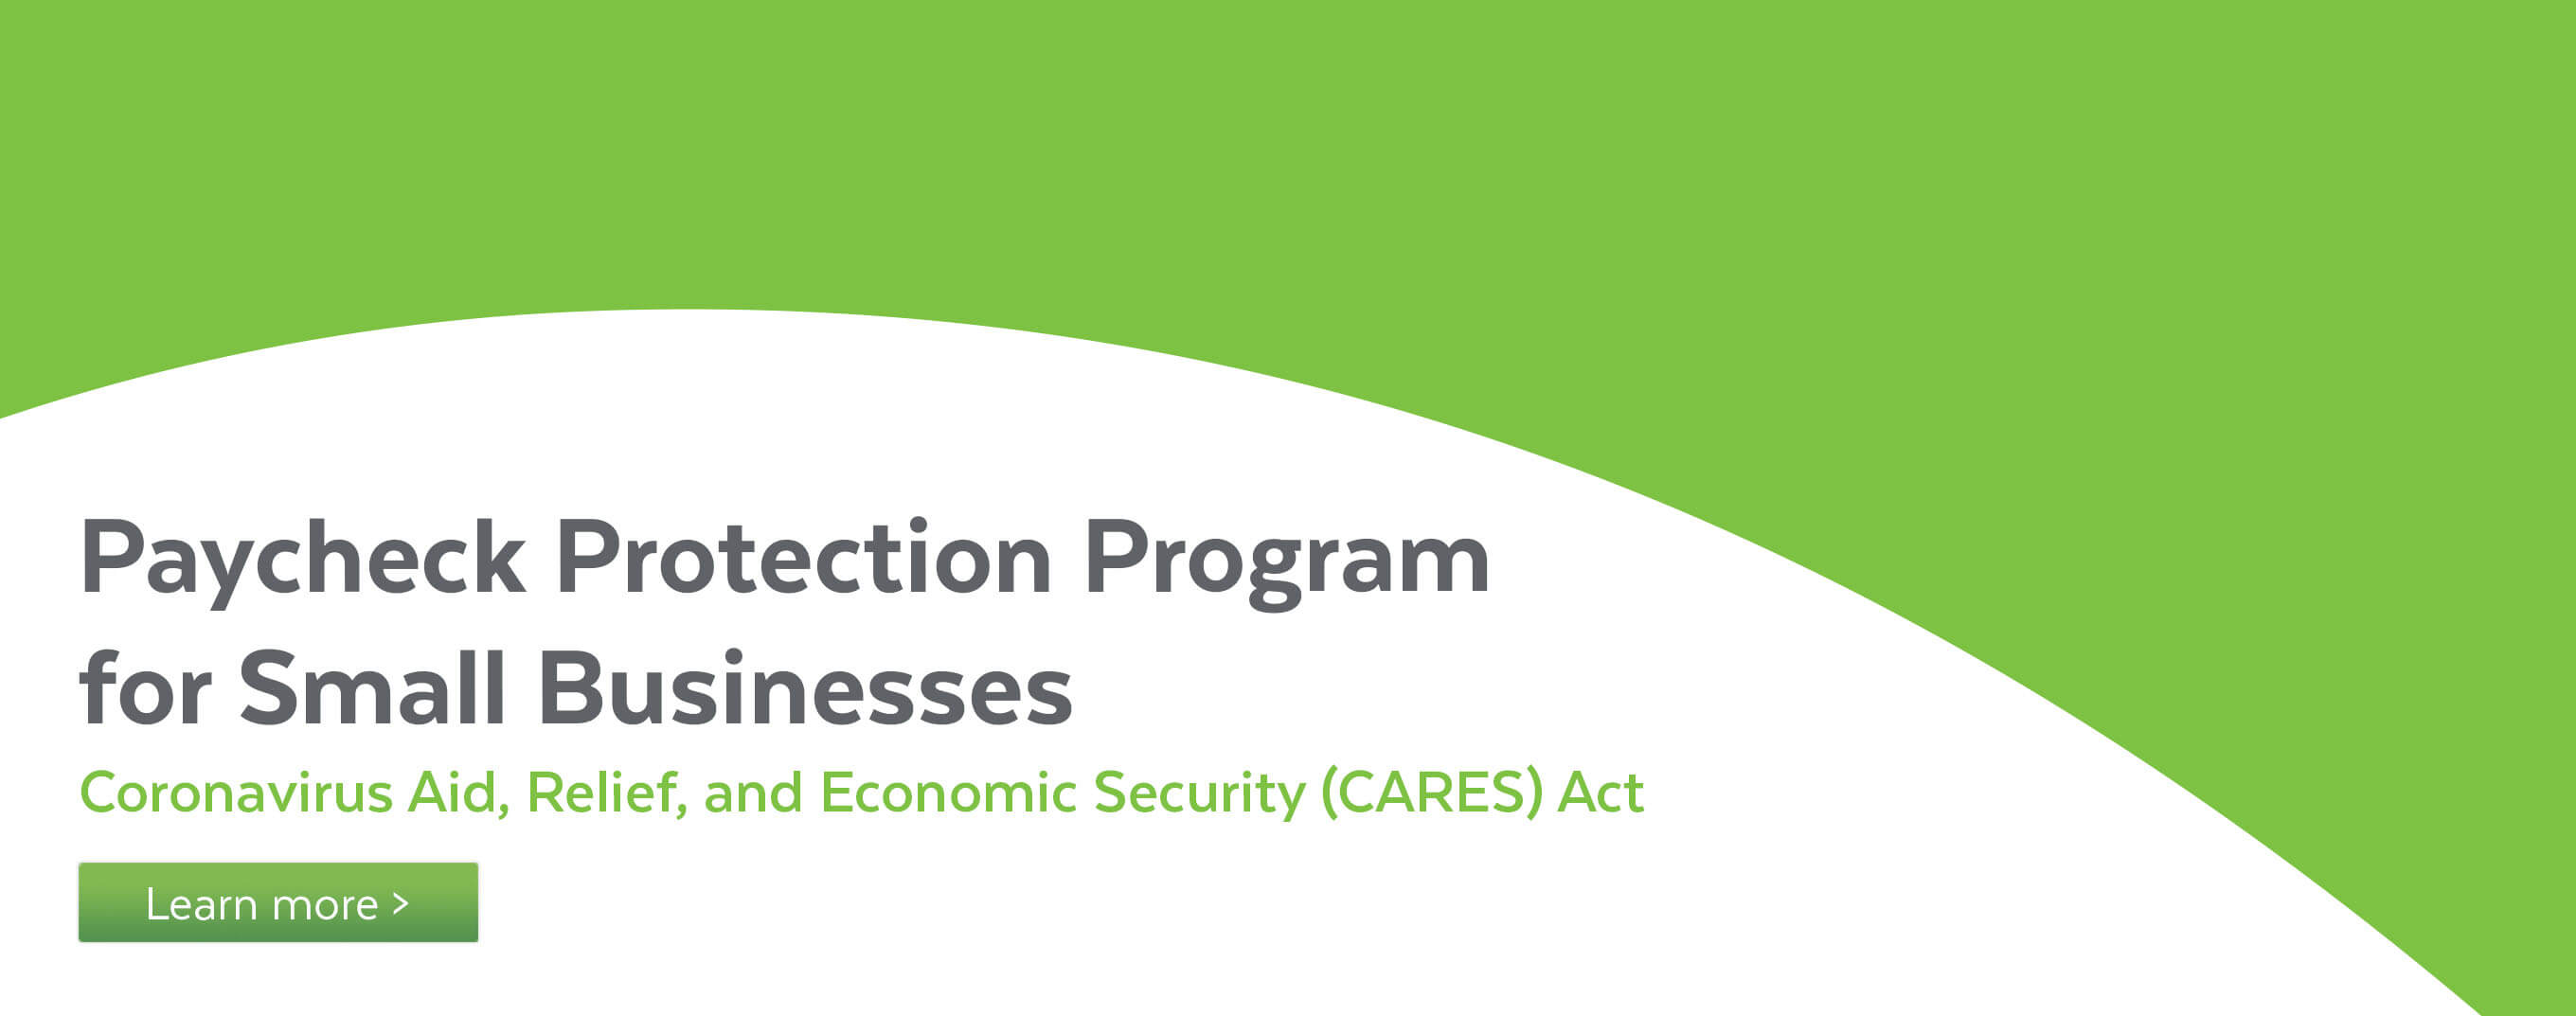 Paycheck Protection Program for small businesses.